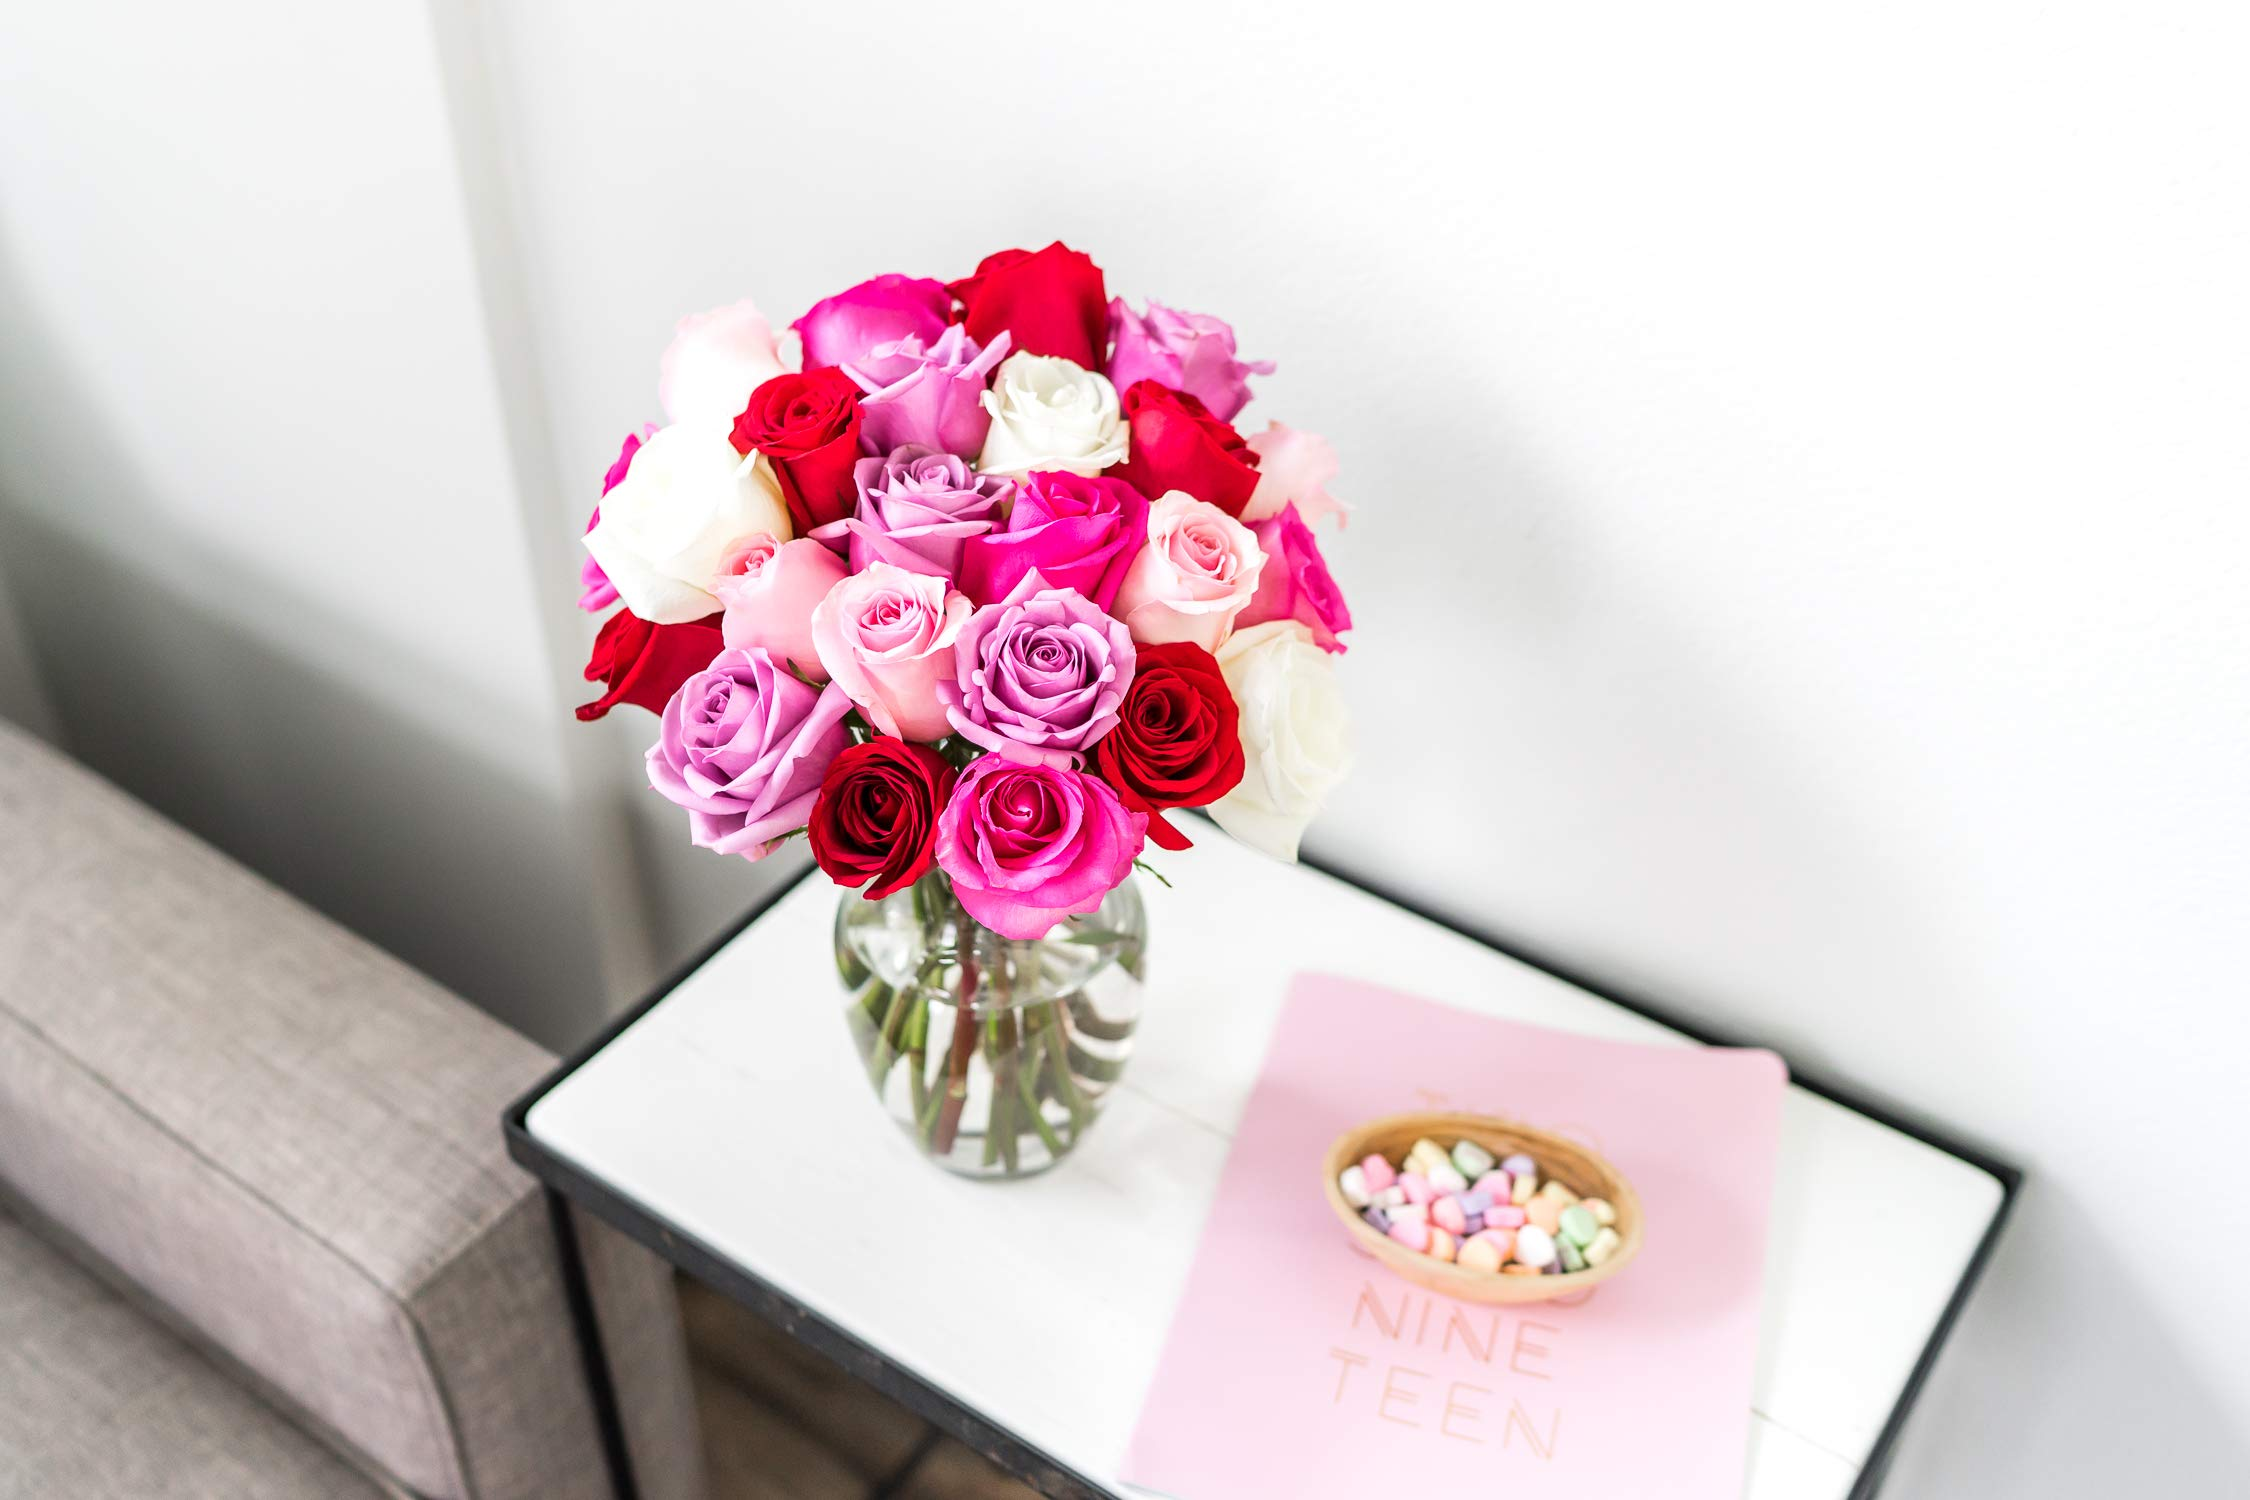 Flowers - 2 Dozen Roses in Red, Pink, Purple & White (Free Vase Included) by From You Flowers (Image #3)